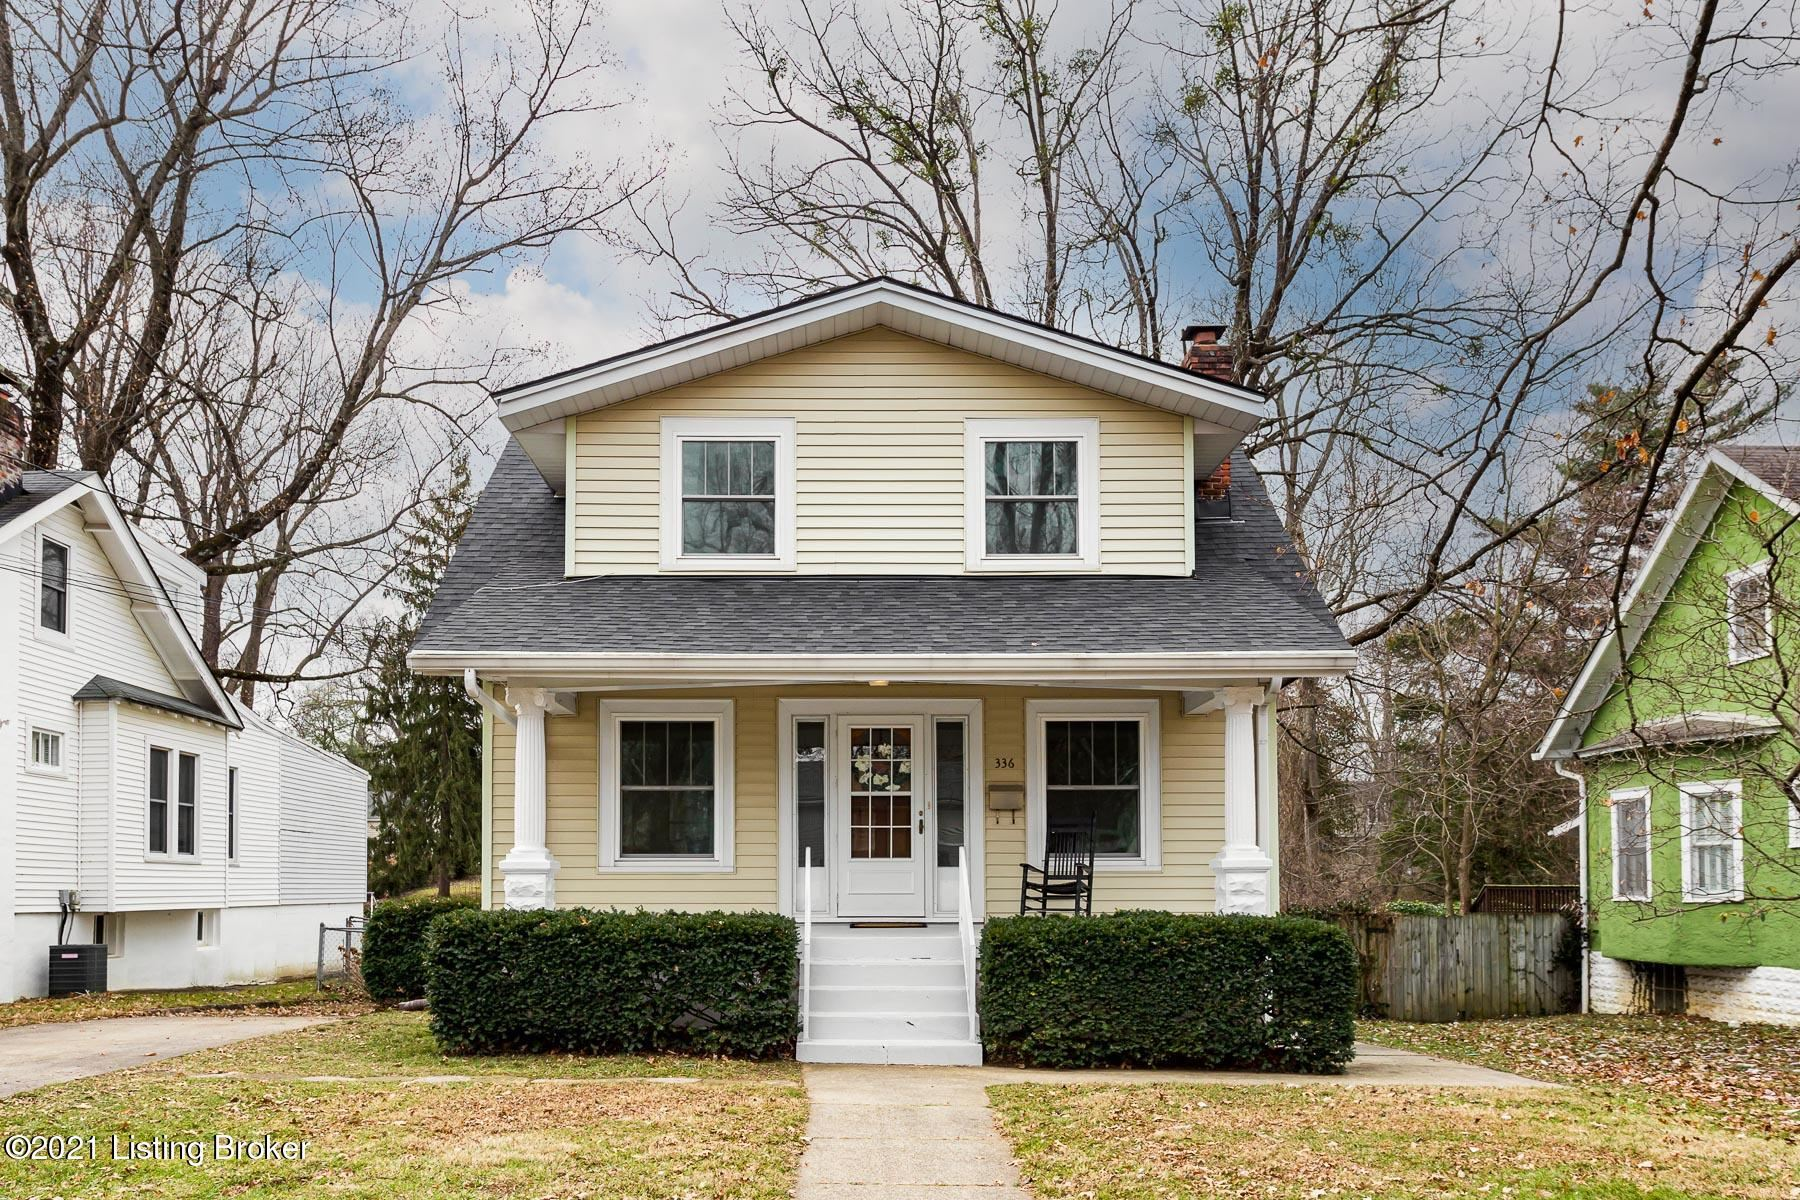 Photo for 336 Winton Ave, Louisville, KY 40206 (MLS # 1577338)